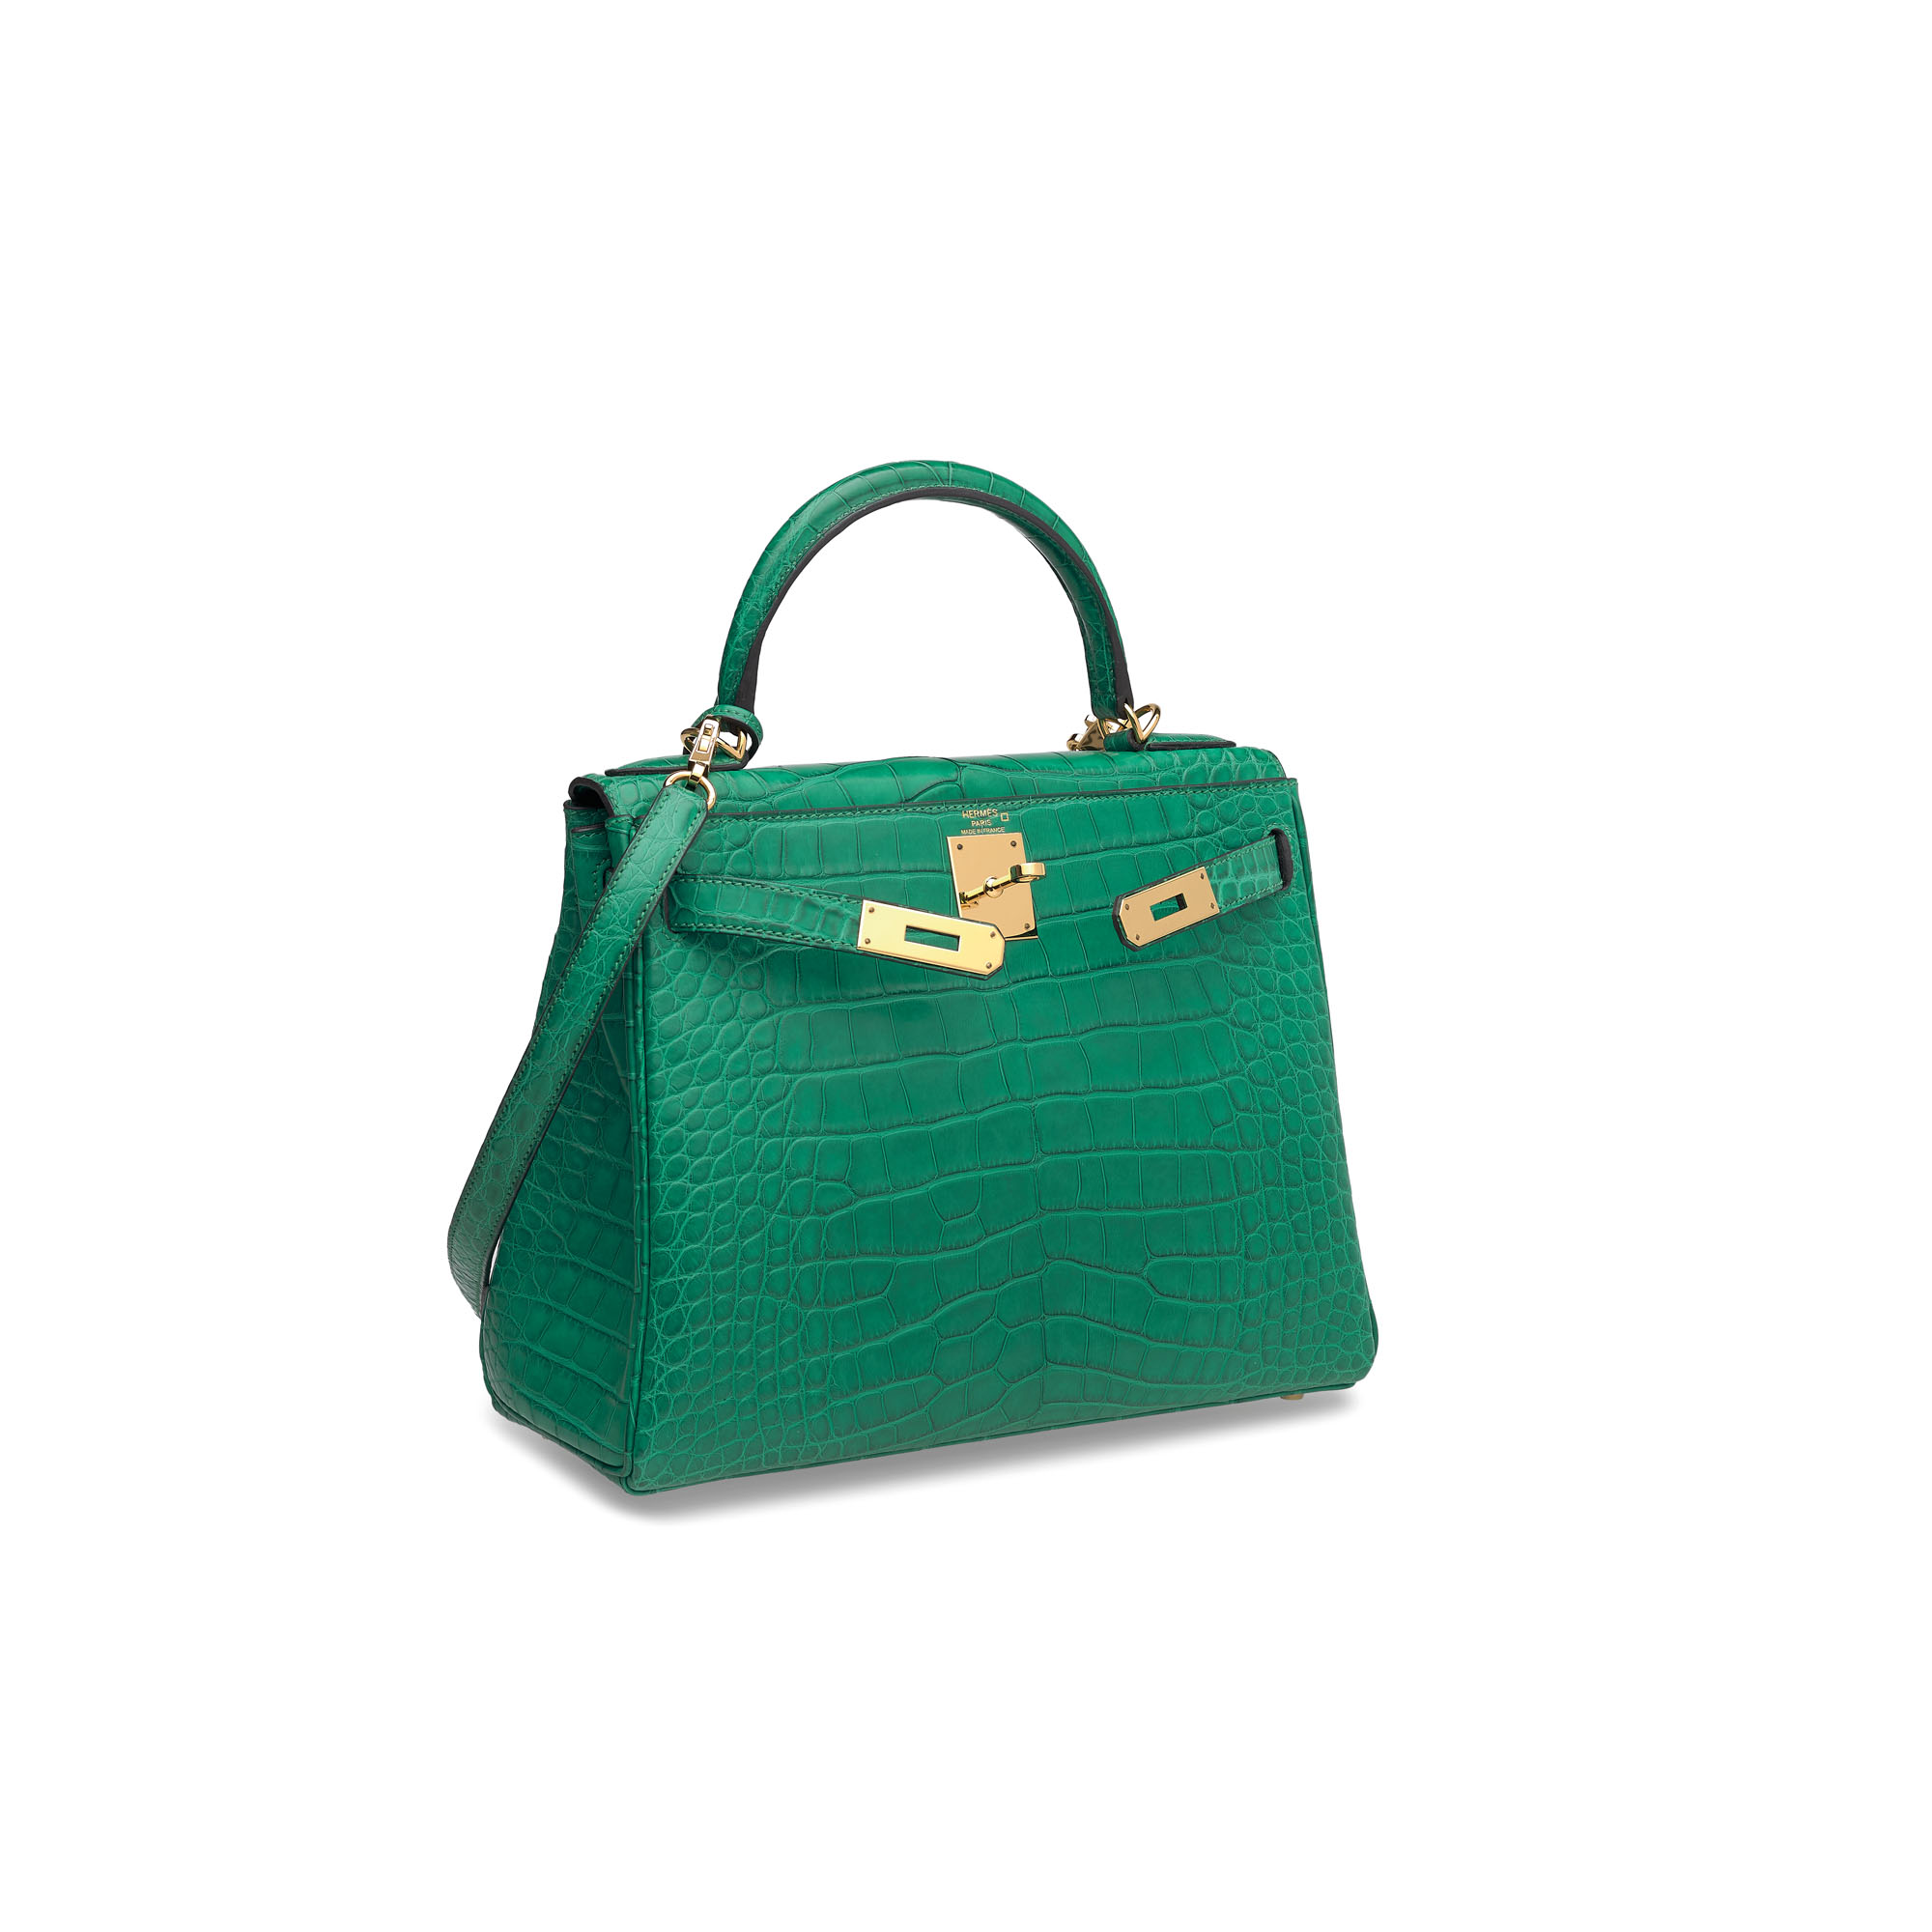 A MATTE MALACHITE ALLIGATOR RETOURNÉ KELLY 28 WITH GOLD HARDWARE